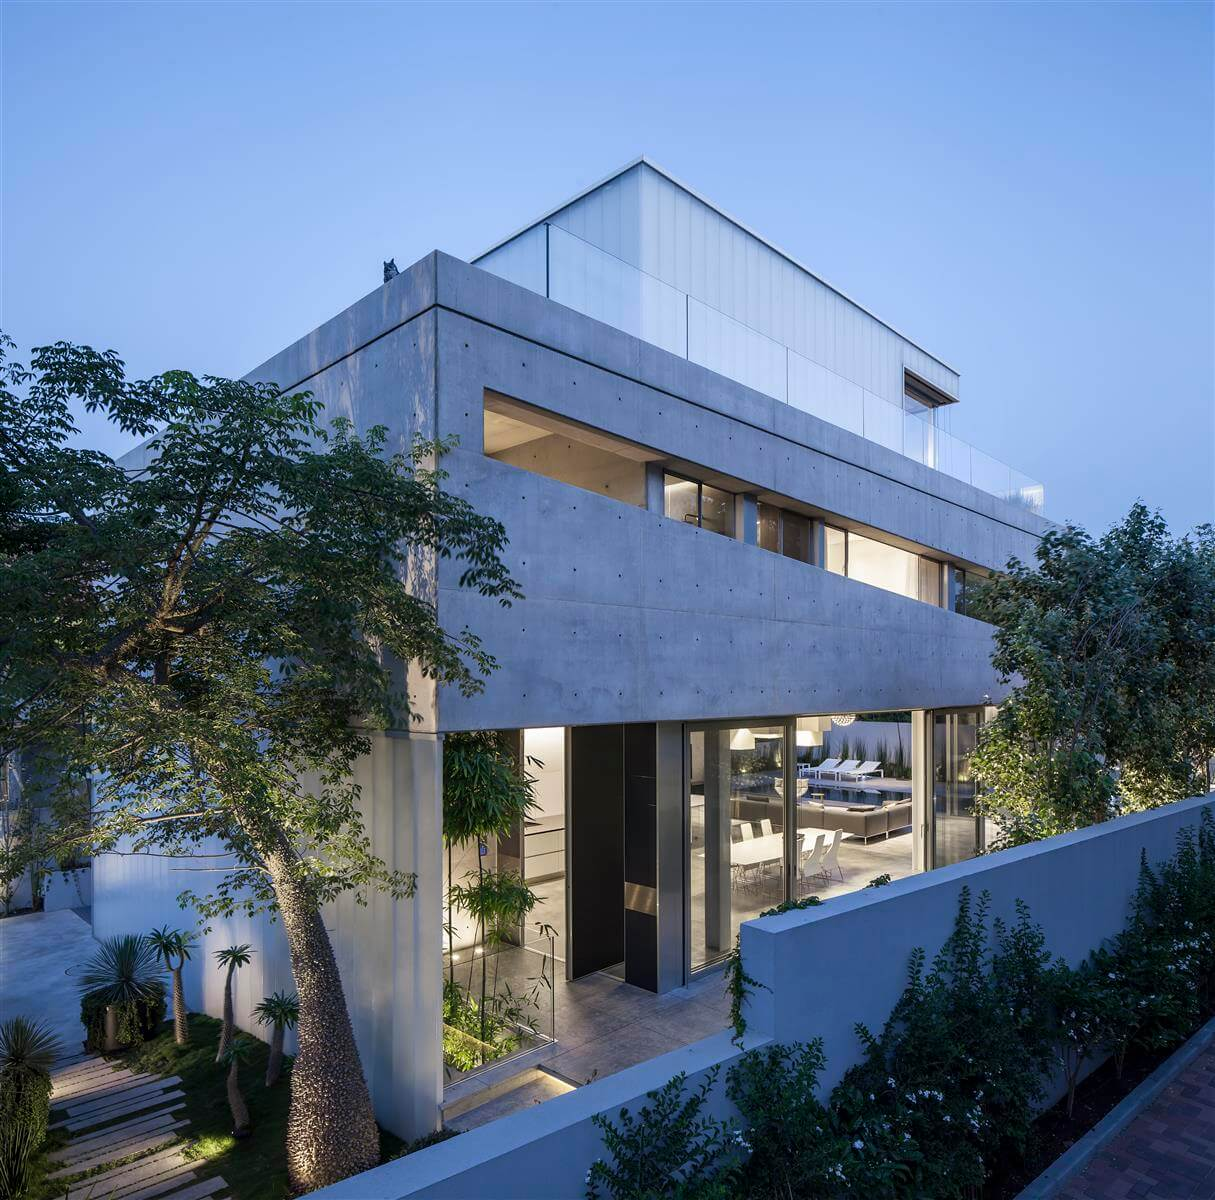 The Concrete Cut House in Ramat Gan by Pitsou Kedem Architects-10